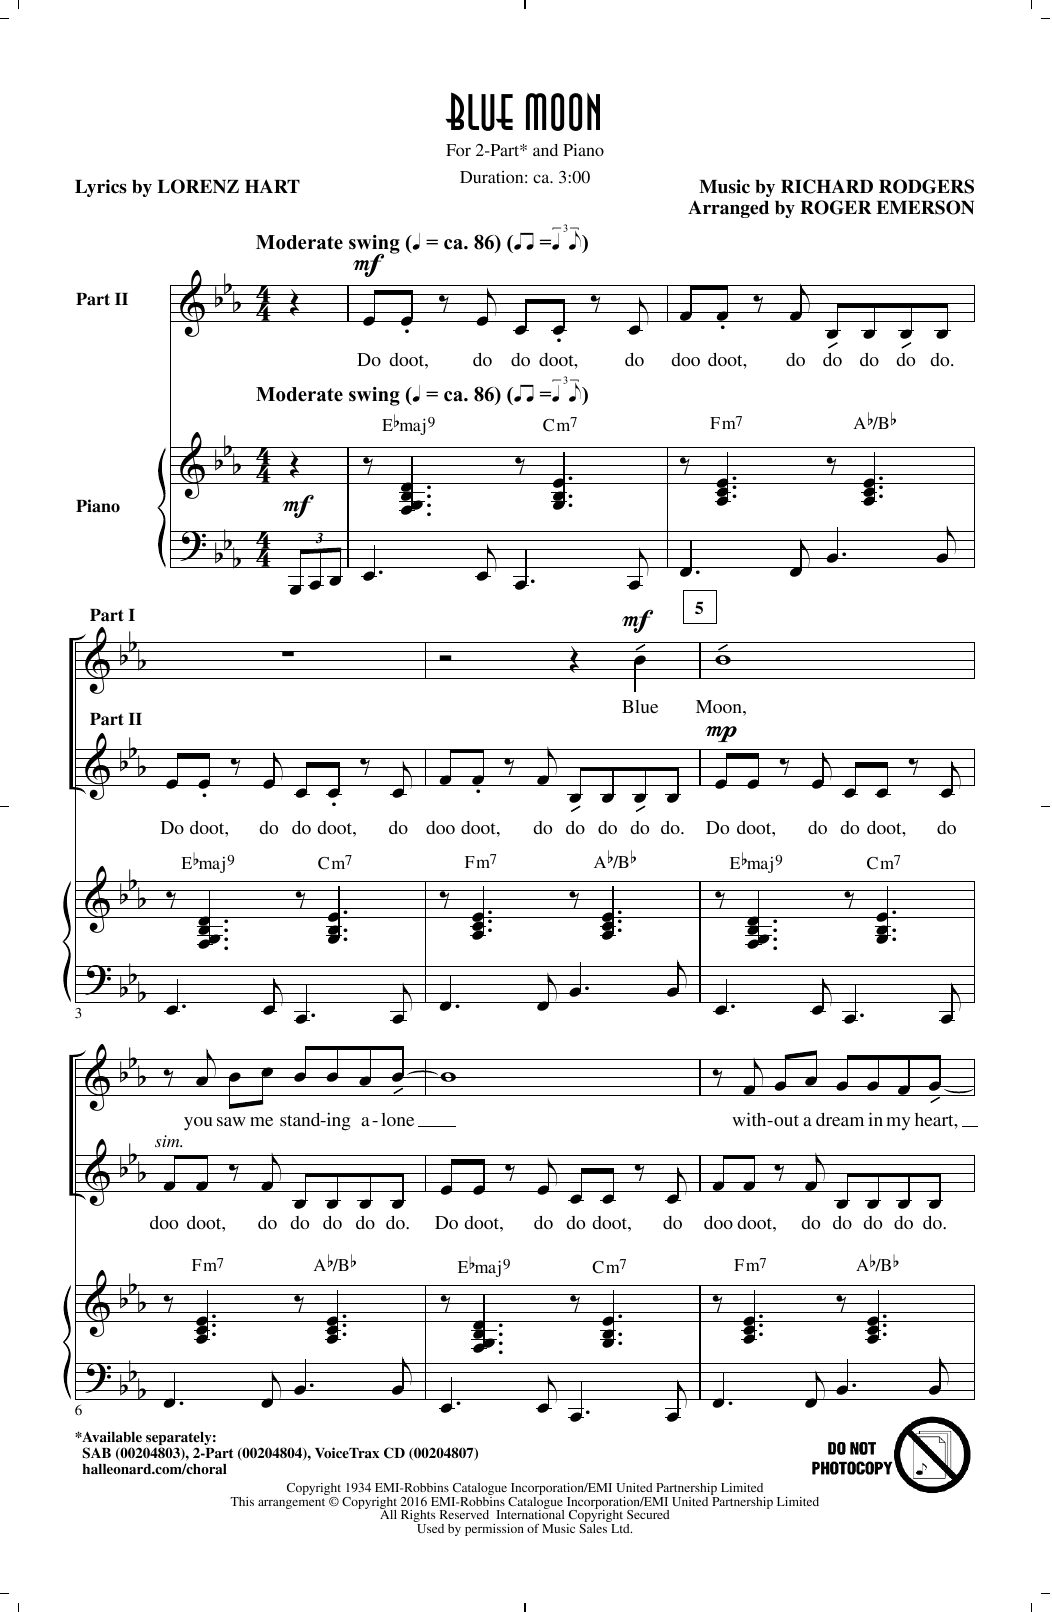 Blue Moon sheet music